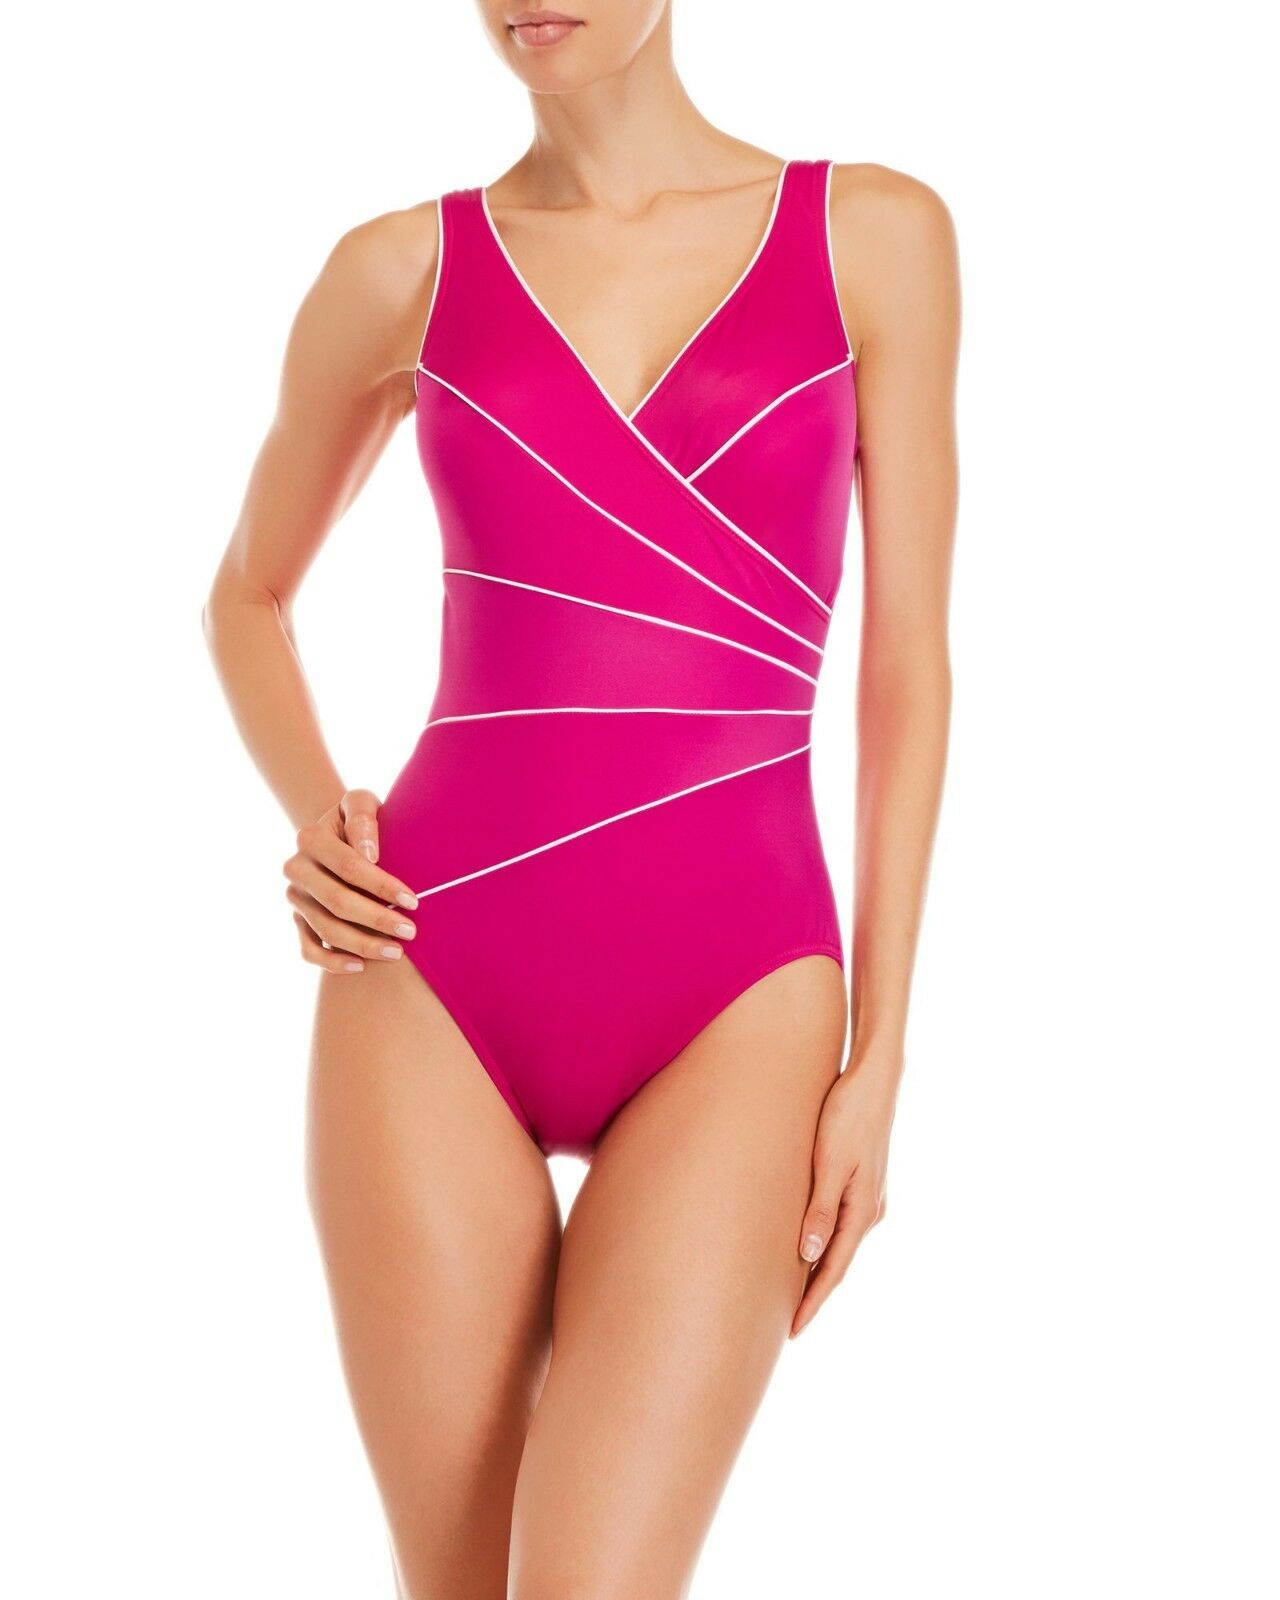 NEW MIRACLESUIT Size 18 48 Horizon Pink White One PIECE SWIMSUIT  150 Retail